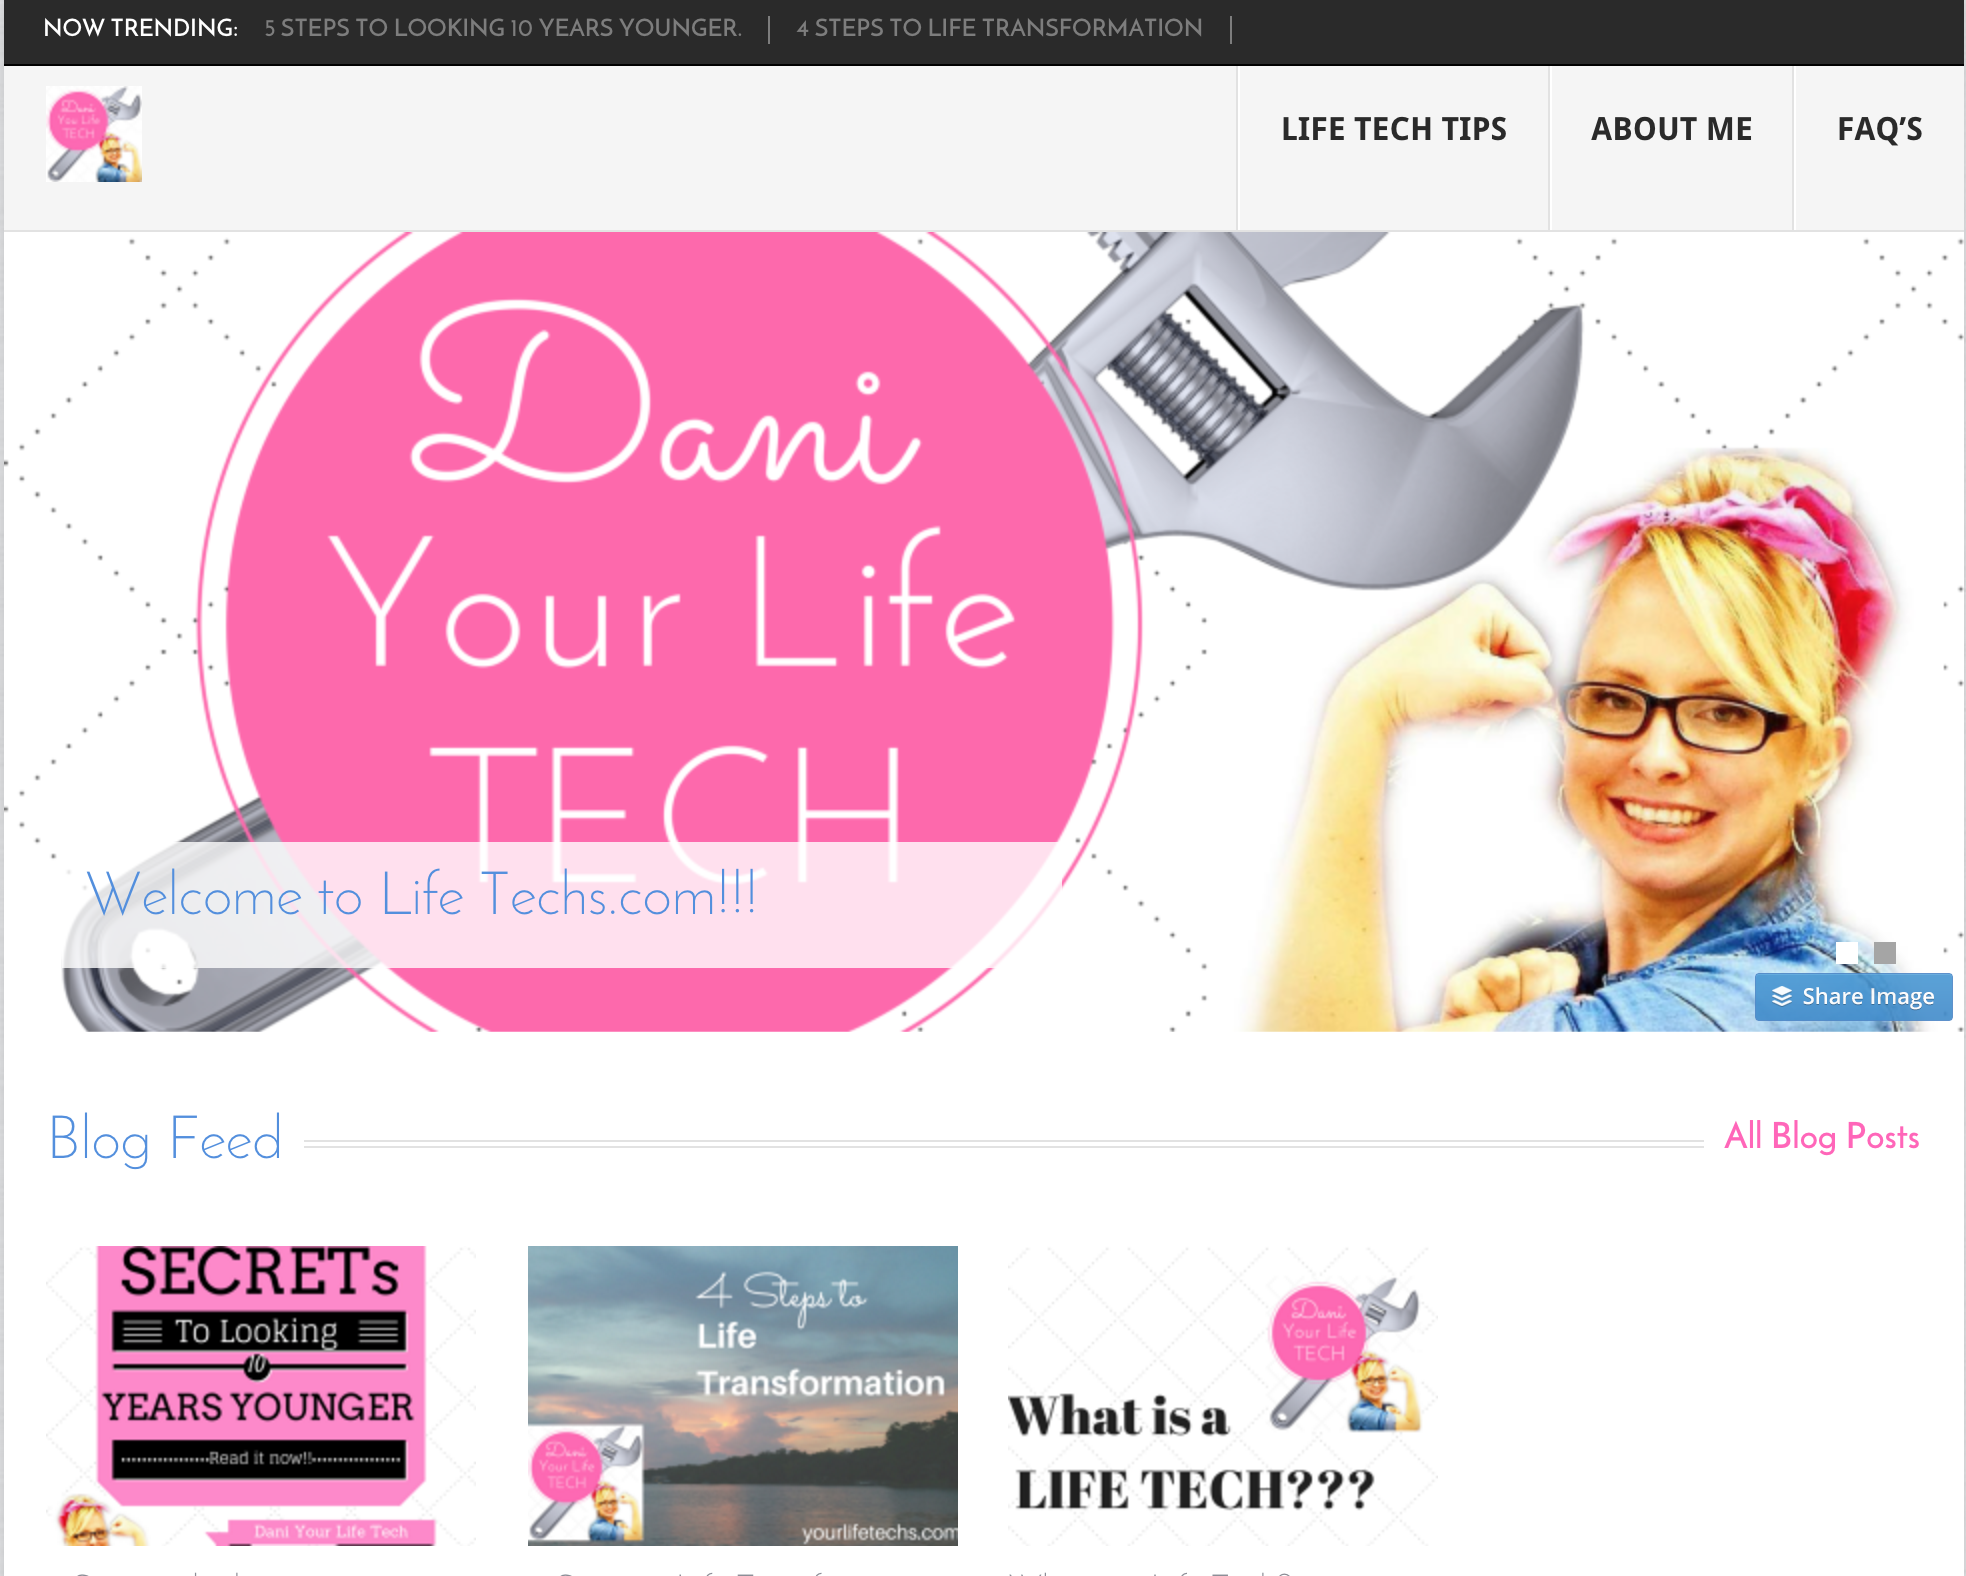 Your Life Techs – DIY Website